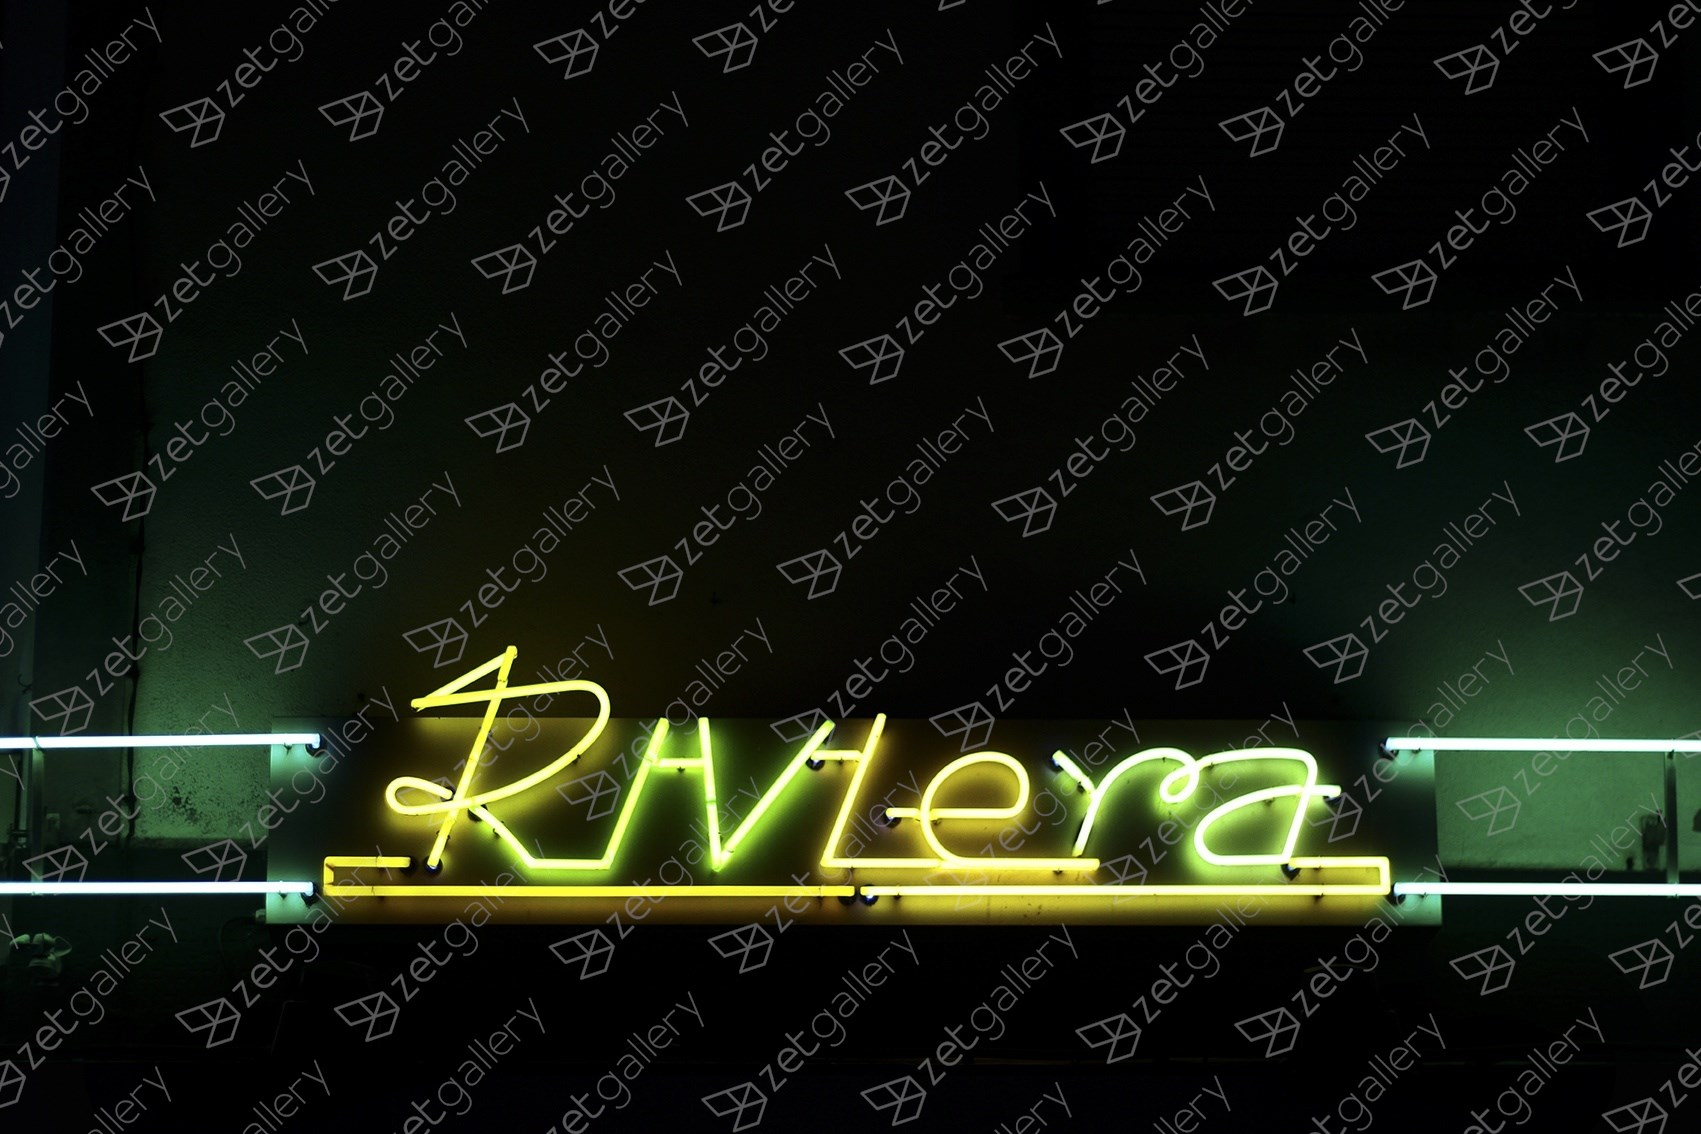 RIVIERA, original Architecture Digital Photography by PAULO PRATA